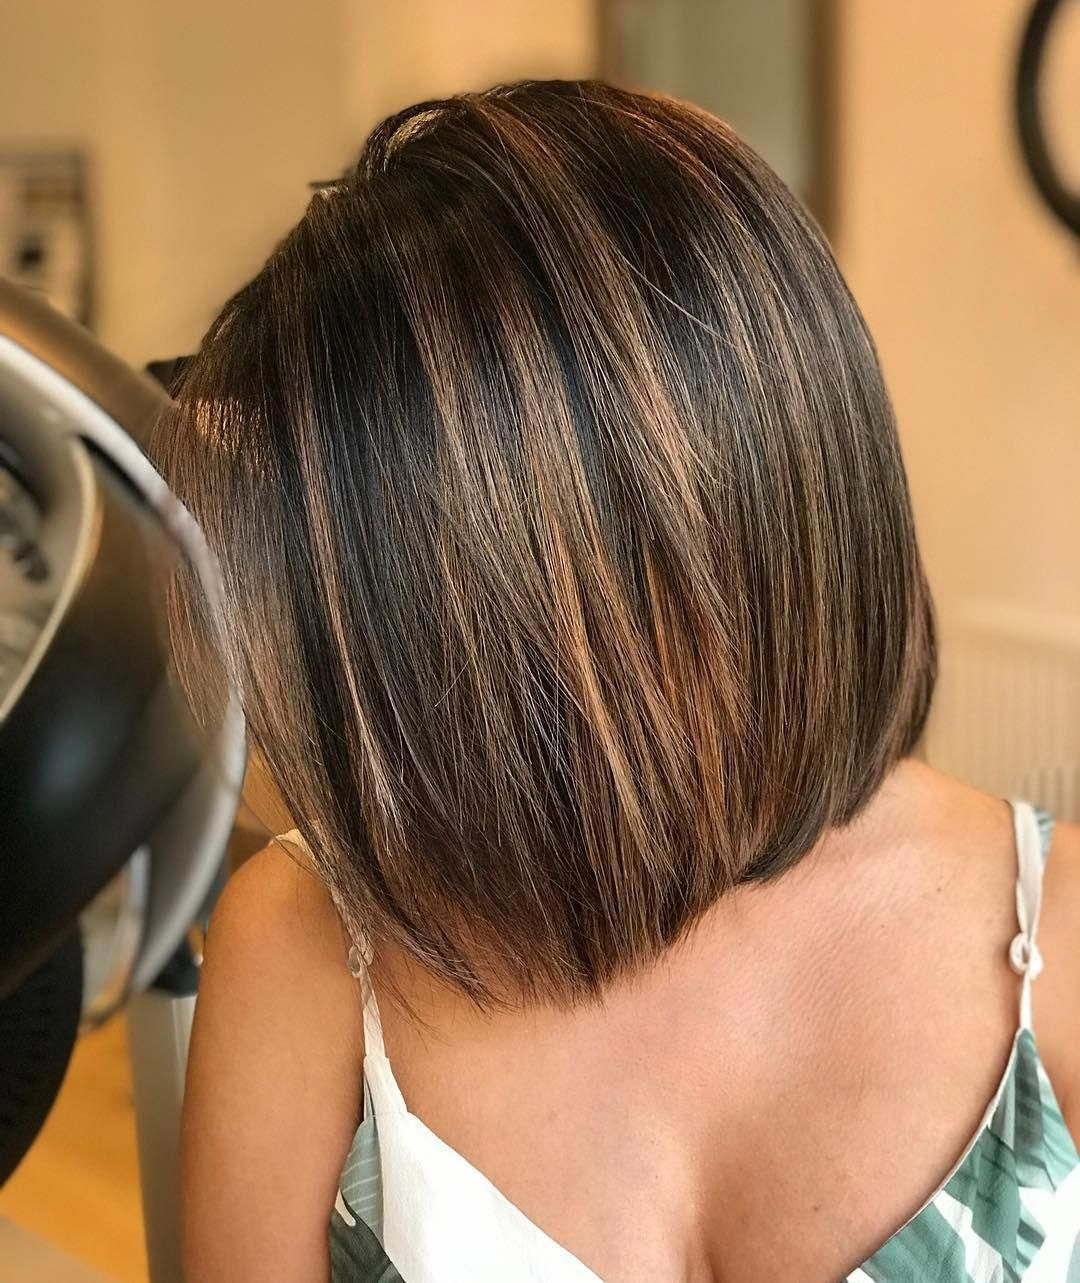 30 New And Modern Bob Haircuts To Copy This Year Bobhaircut2019 Modern Bob Haircut Bob Hairstyles Thick Hair Styles